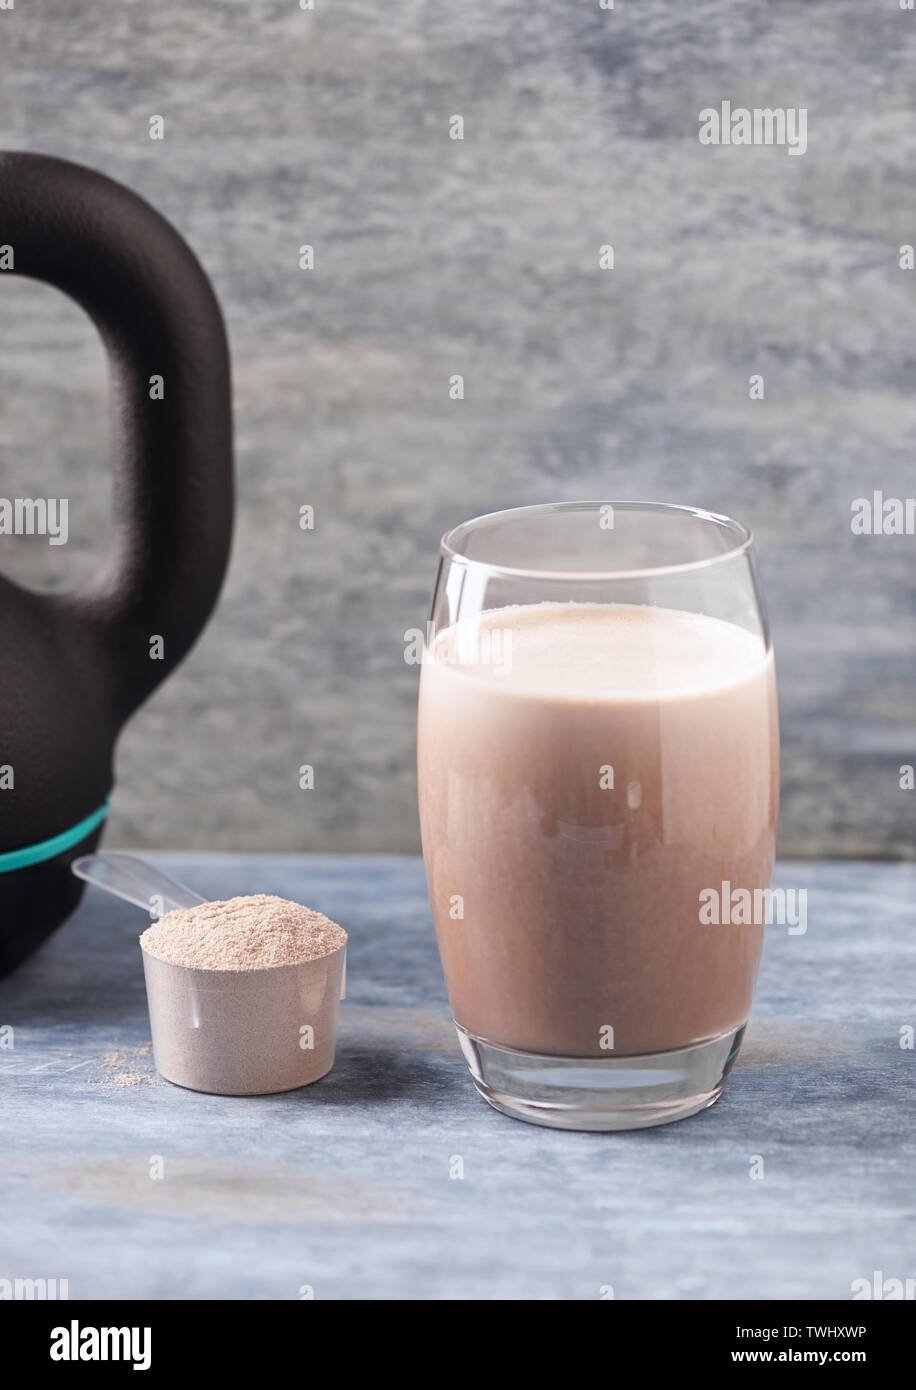 Glass Of Chocolate Protein Shake With Milk And Banana Whey Protein In Scoop And Black Sporting Kettlebell In Background Stock Photo Alamy